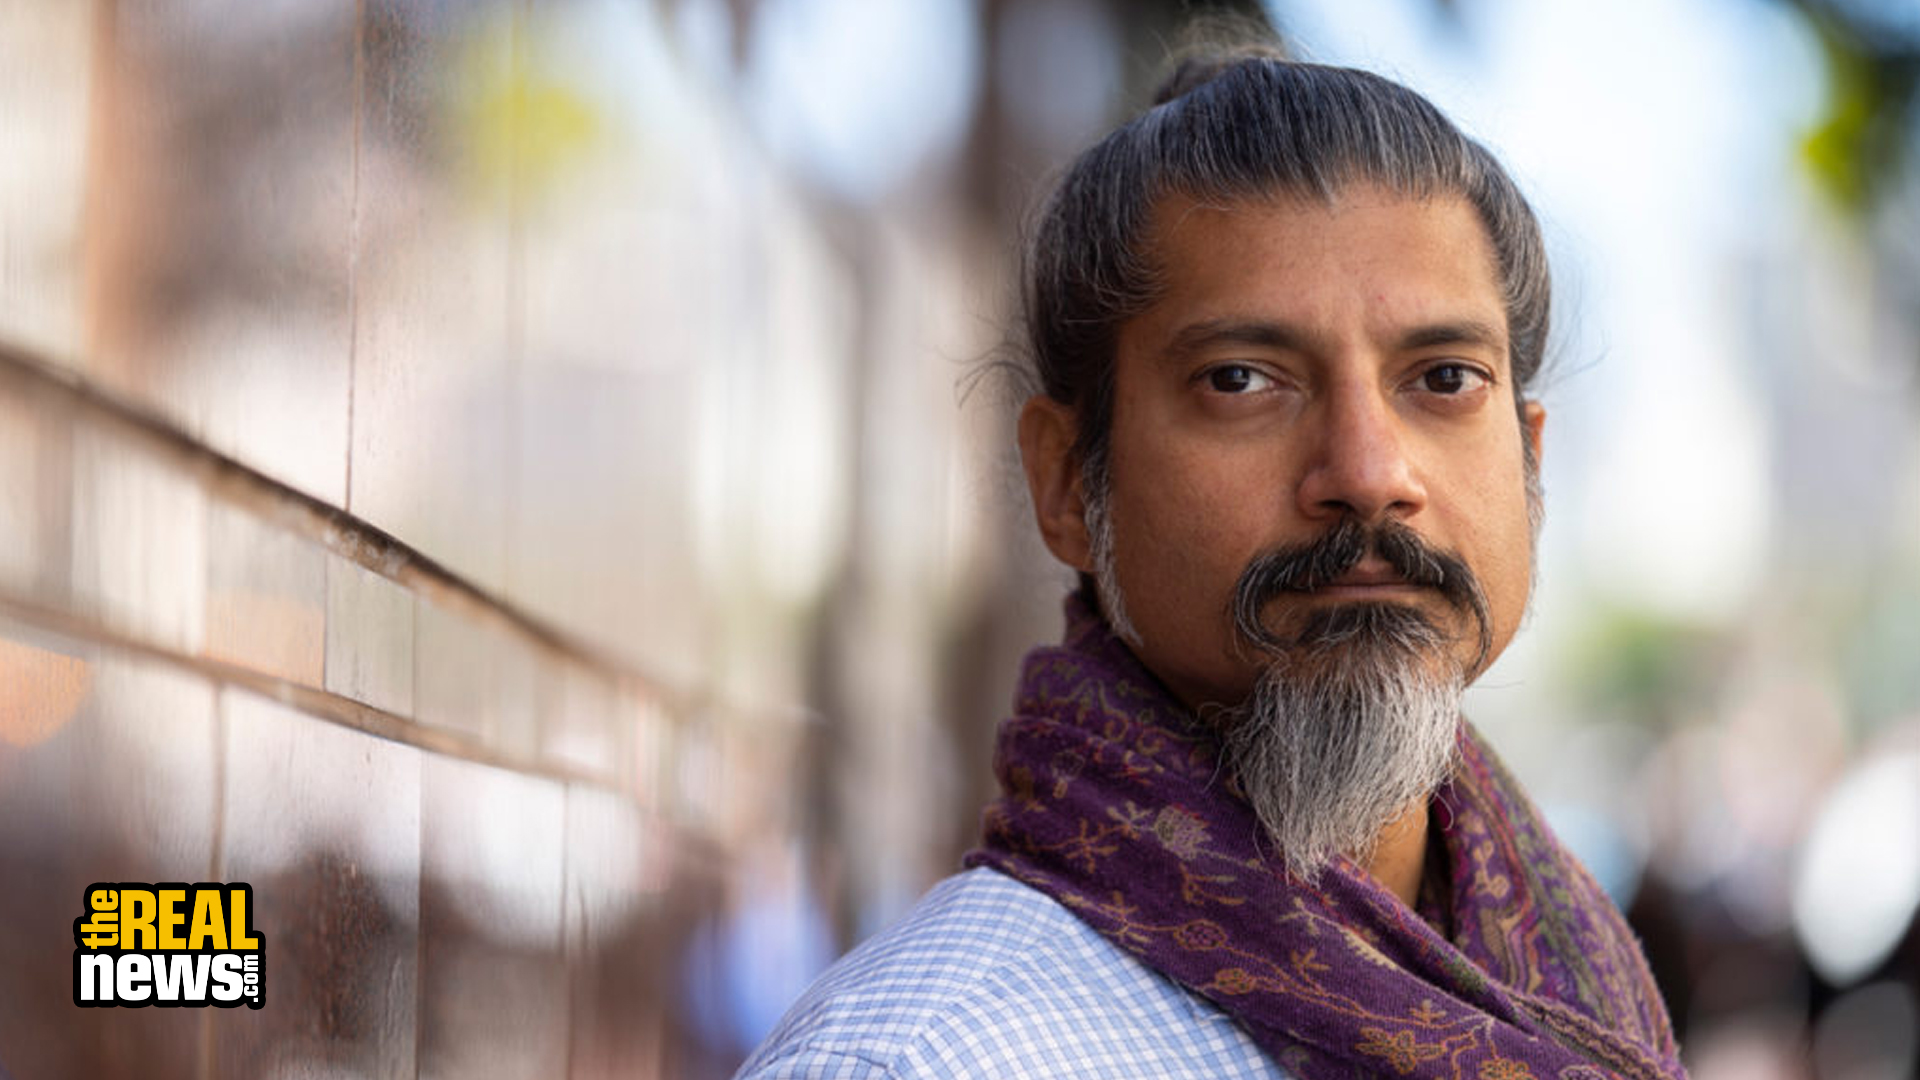 Shahid Buttar Mounts A Serious Congressional Race Against Speaker Of The House Nancy Pelosi